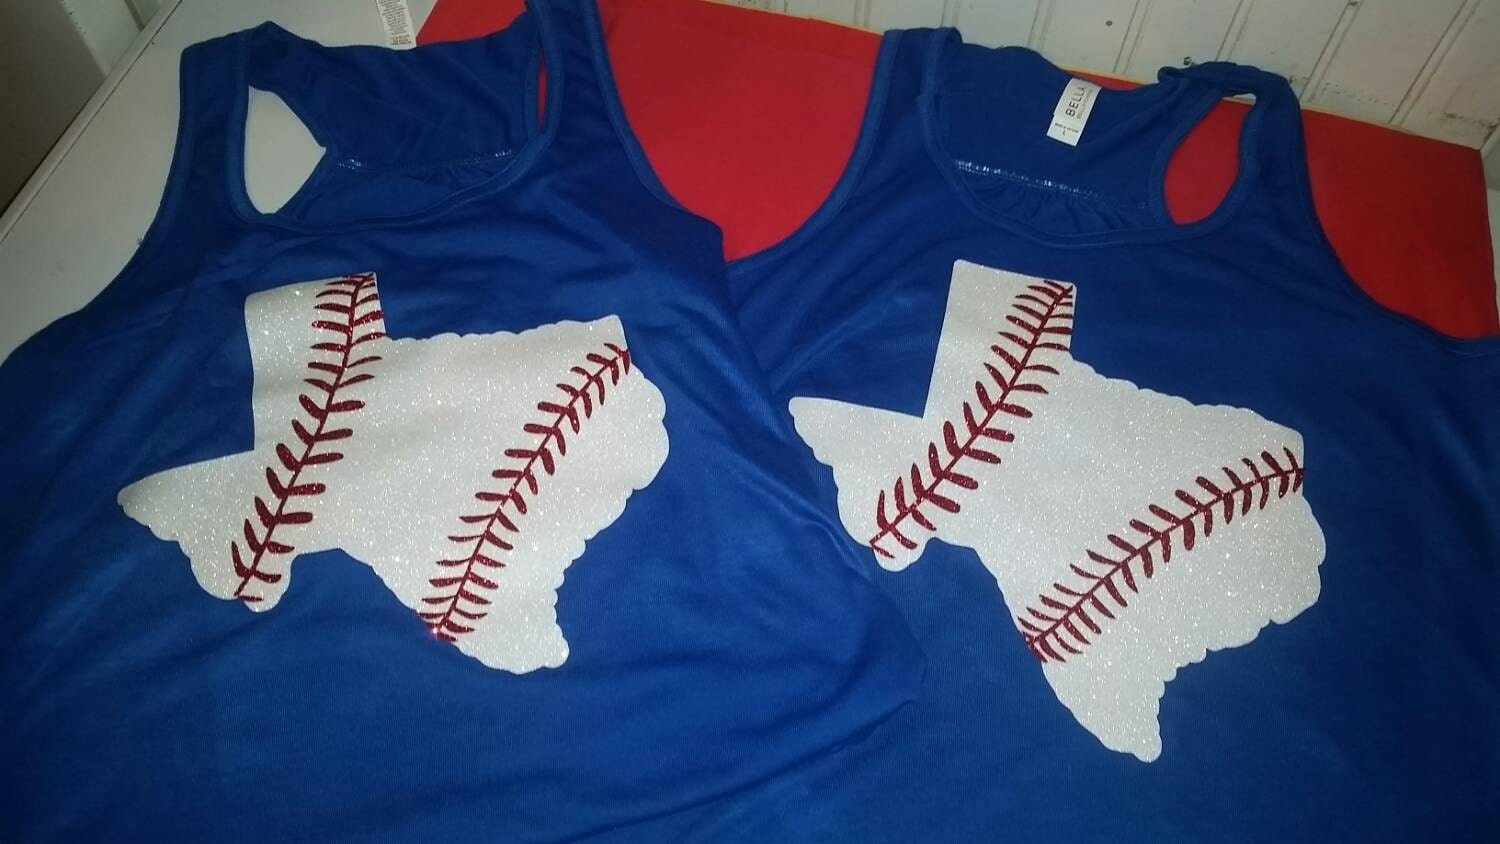 State baseball shirt texas state baseball shirt baseball mom for Texas baseball t shirt